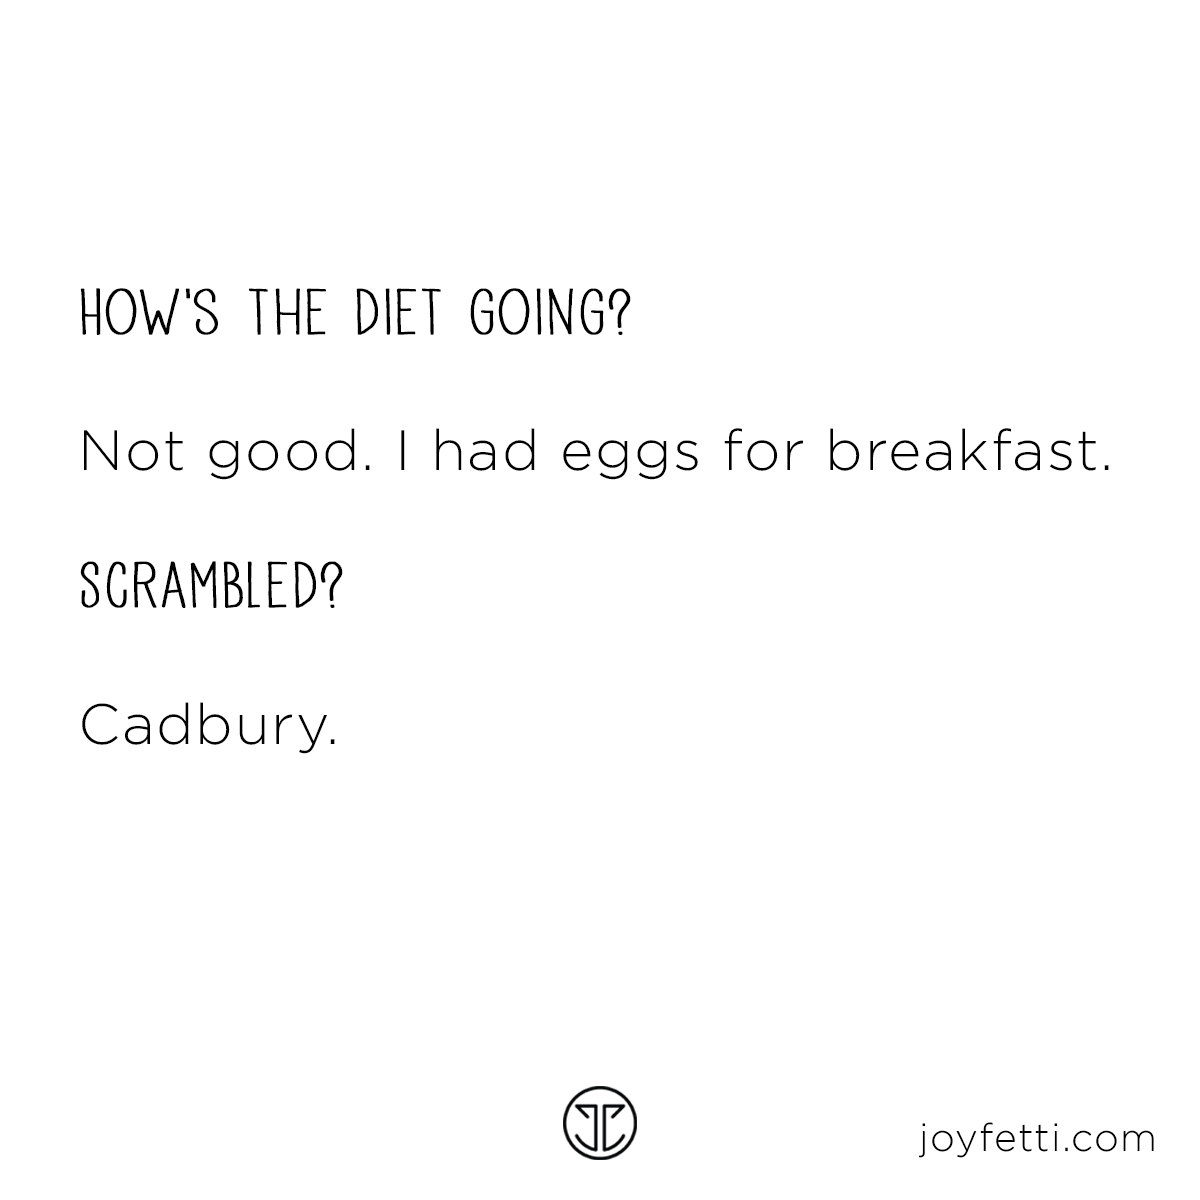 cadbury for breakfast_joyfetti.com